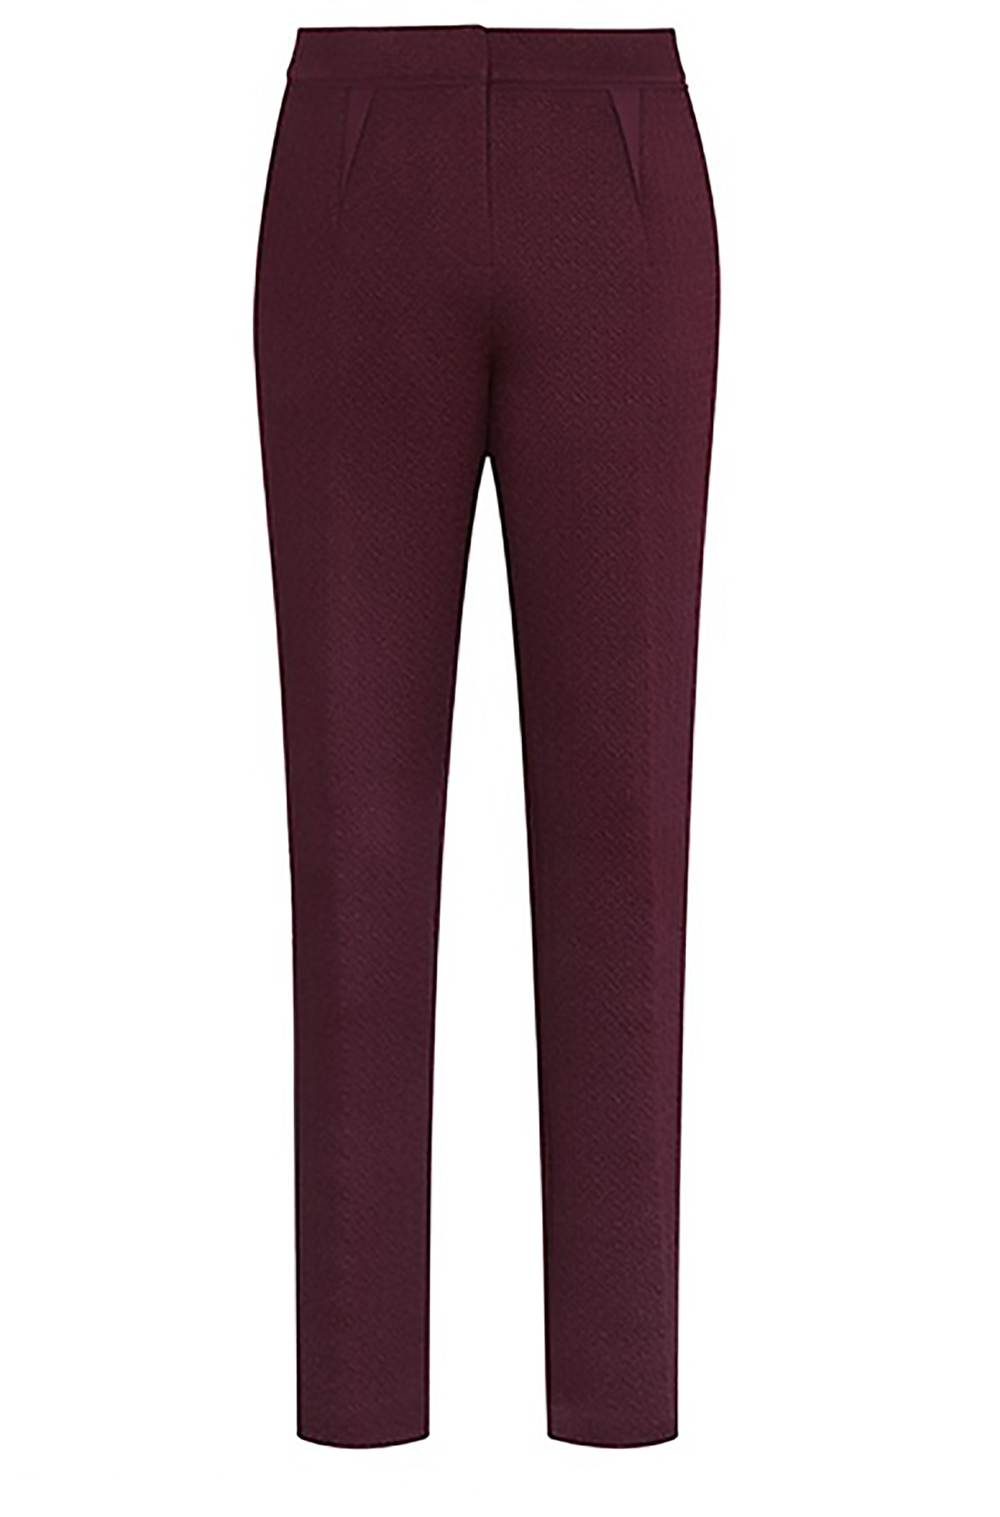 reiss marvin occasion trousers burgundy reiss 1500.jpg